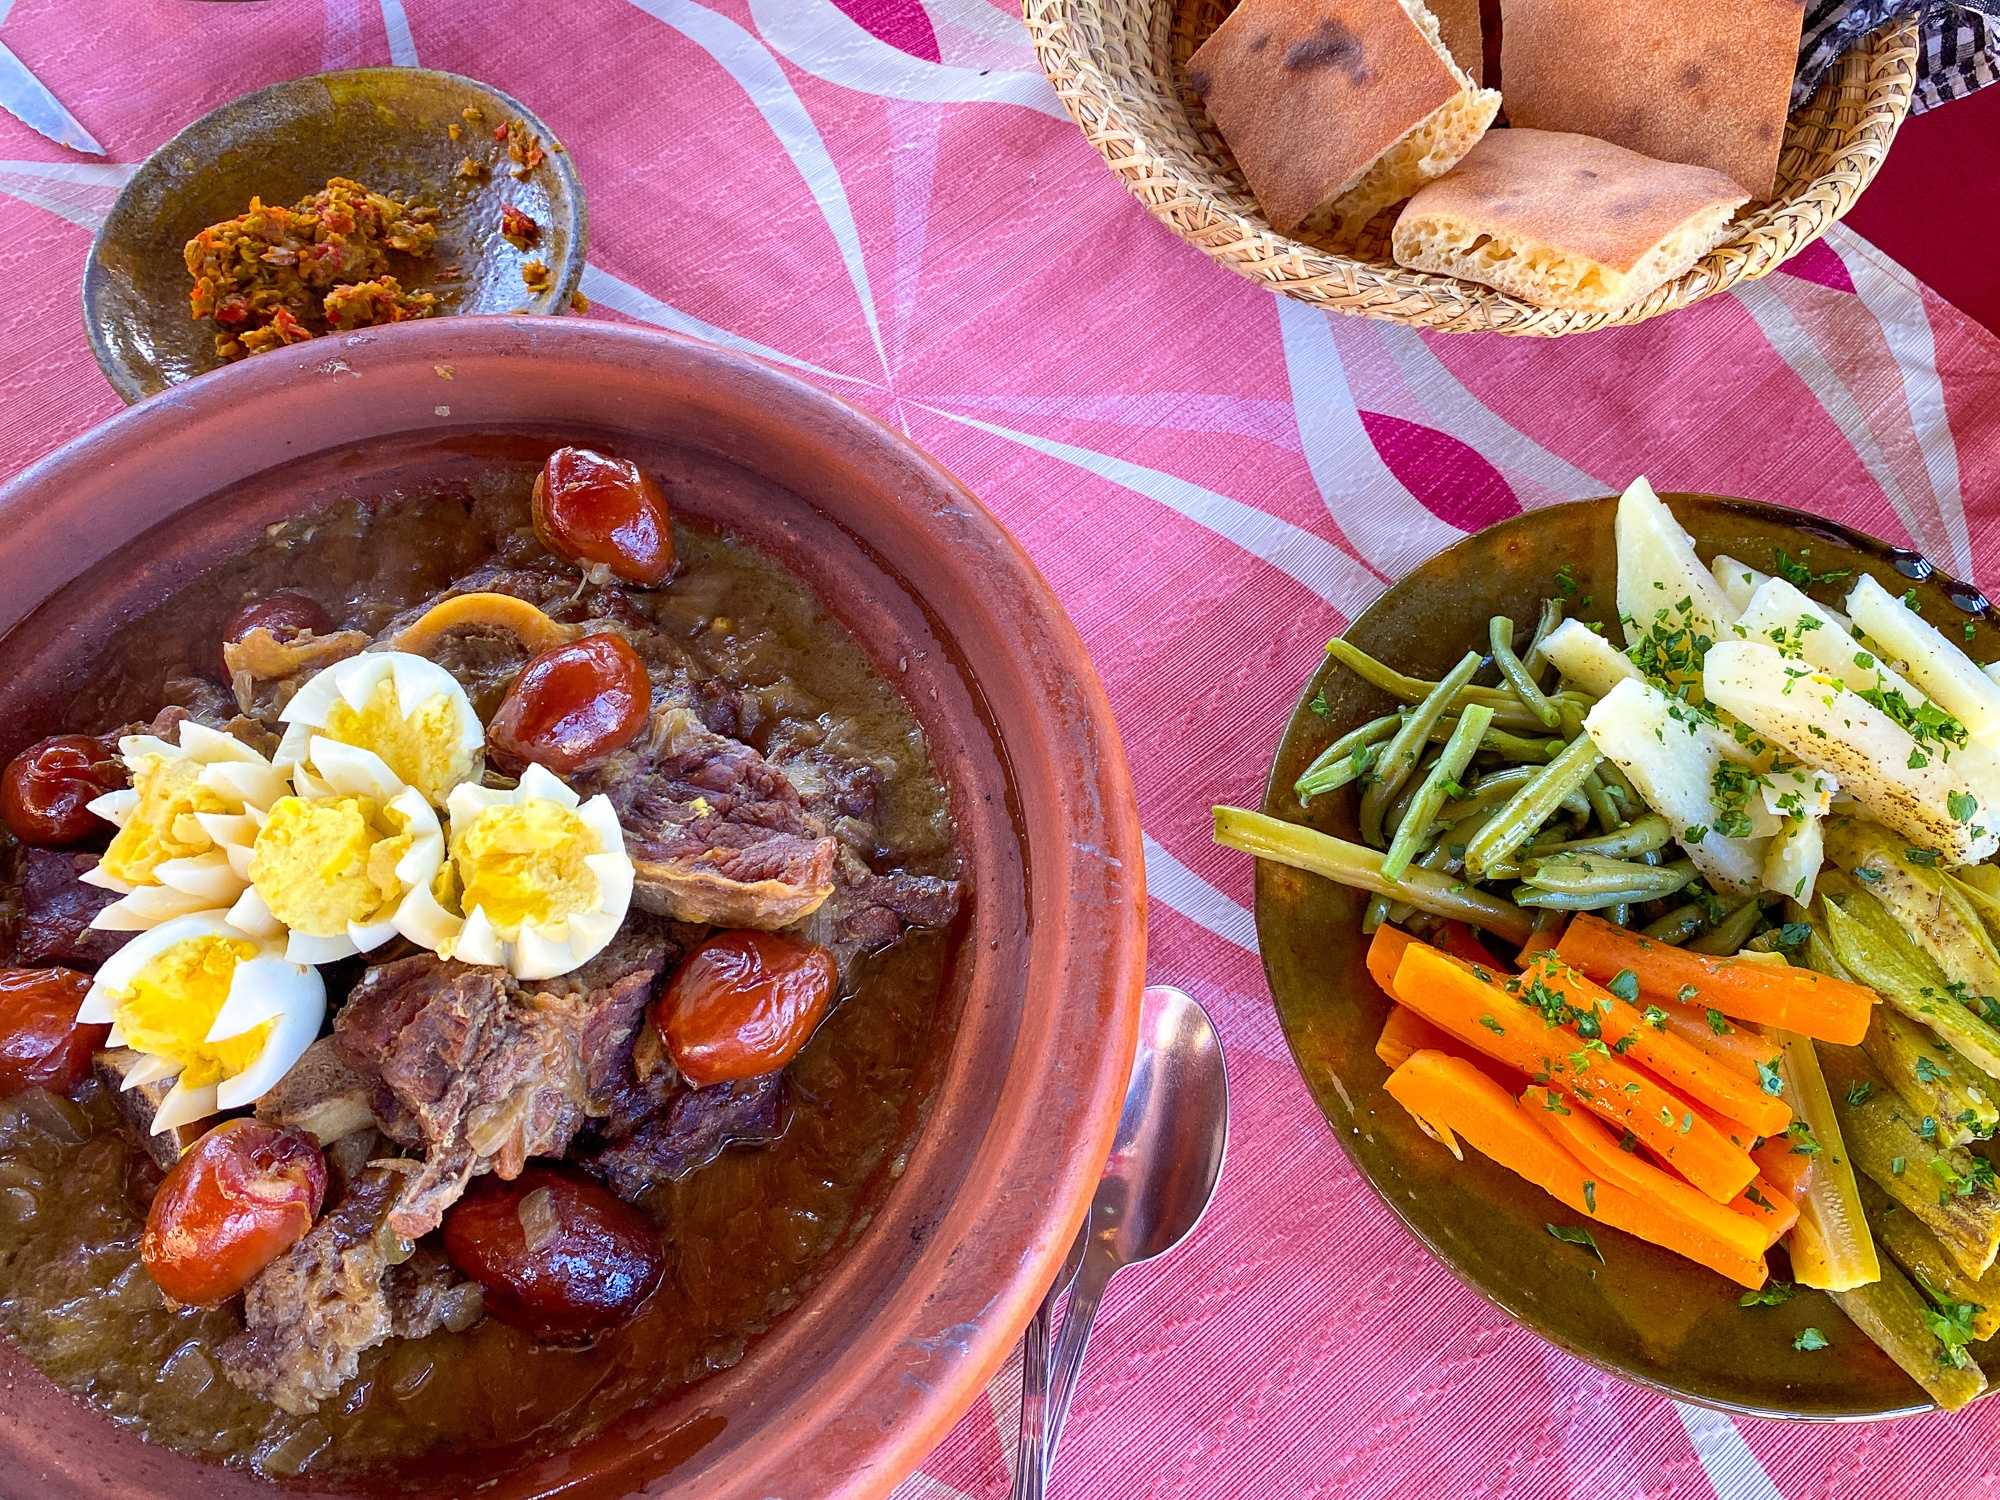 Camel tagine with a side of fresh veggies, harissa, and Morocco's true staple...bread